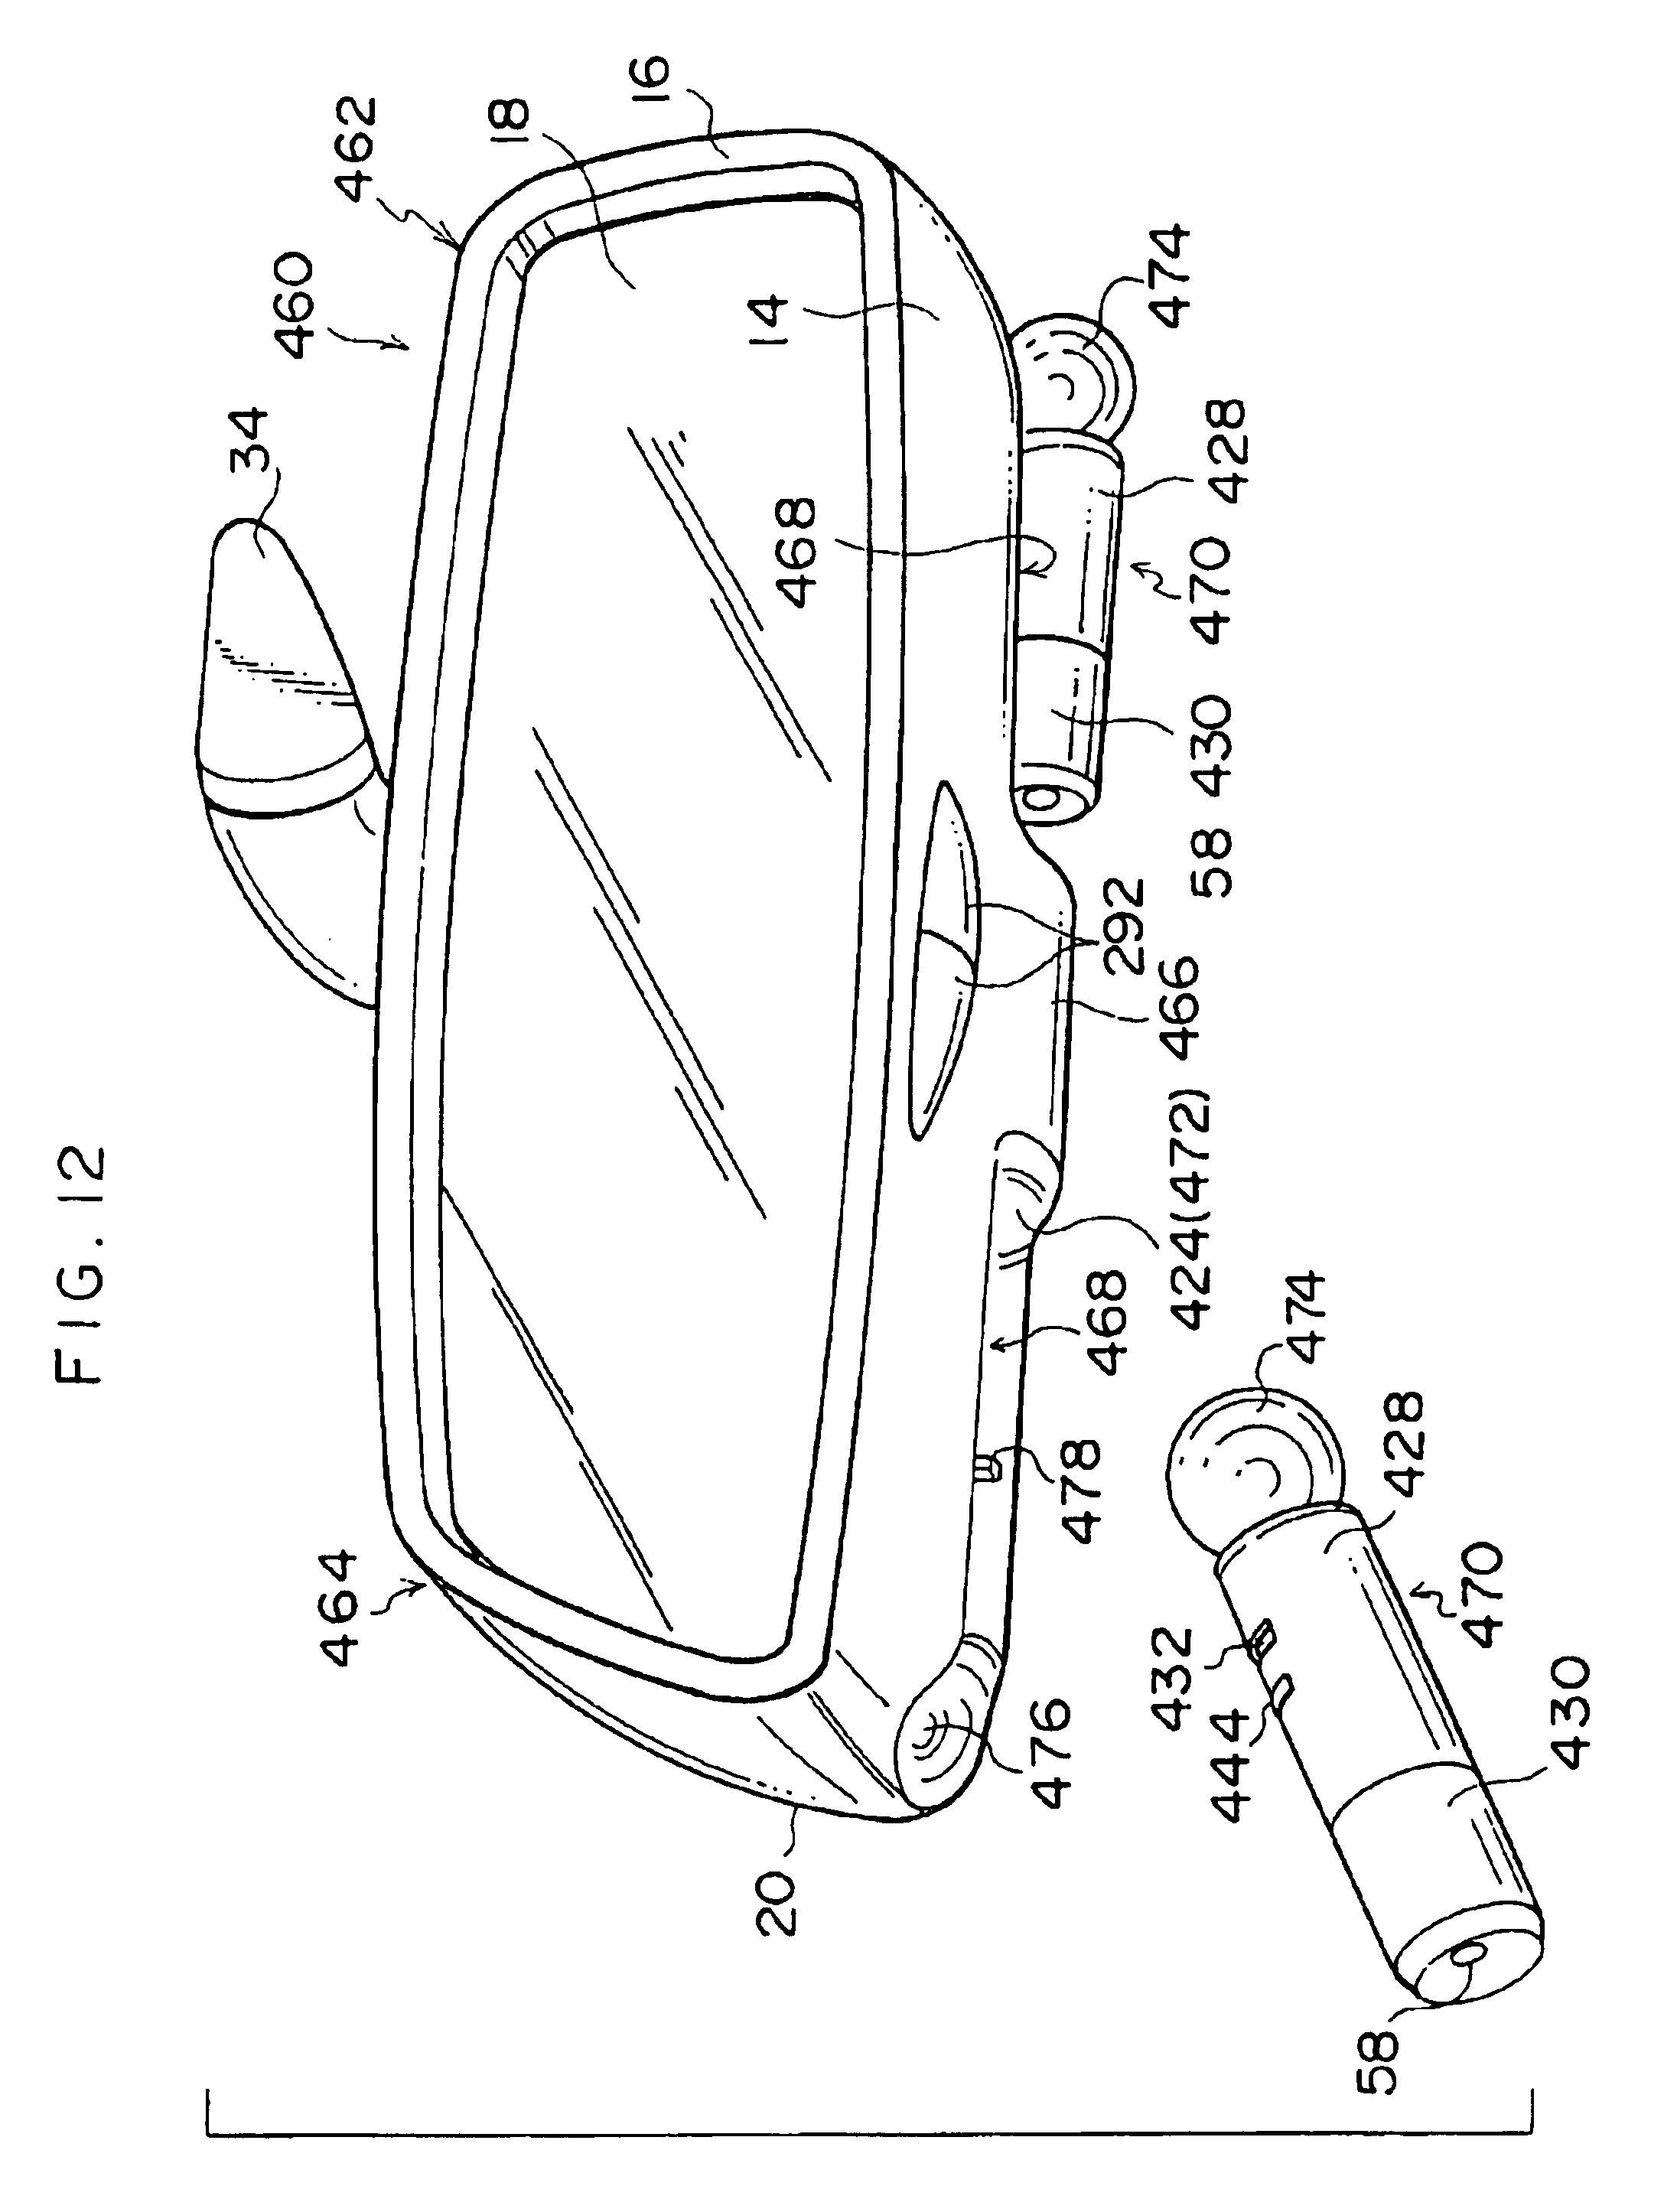 Patent us6746140 rearview mirror and interior lighting system